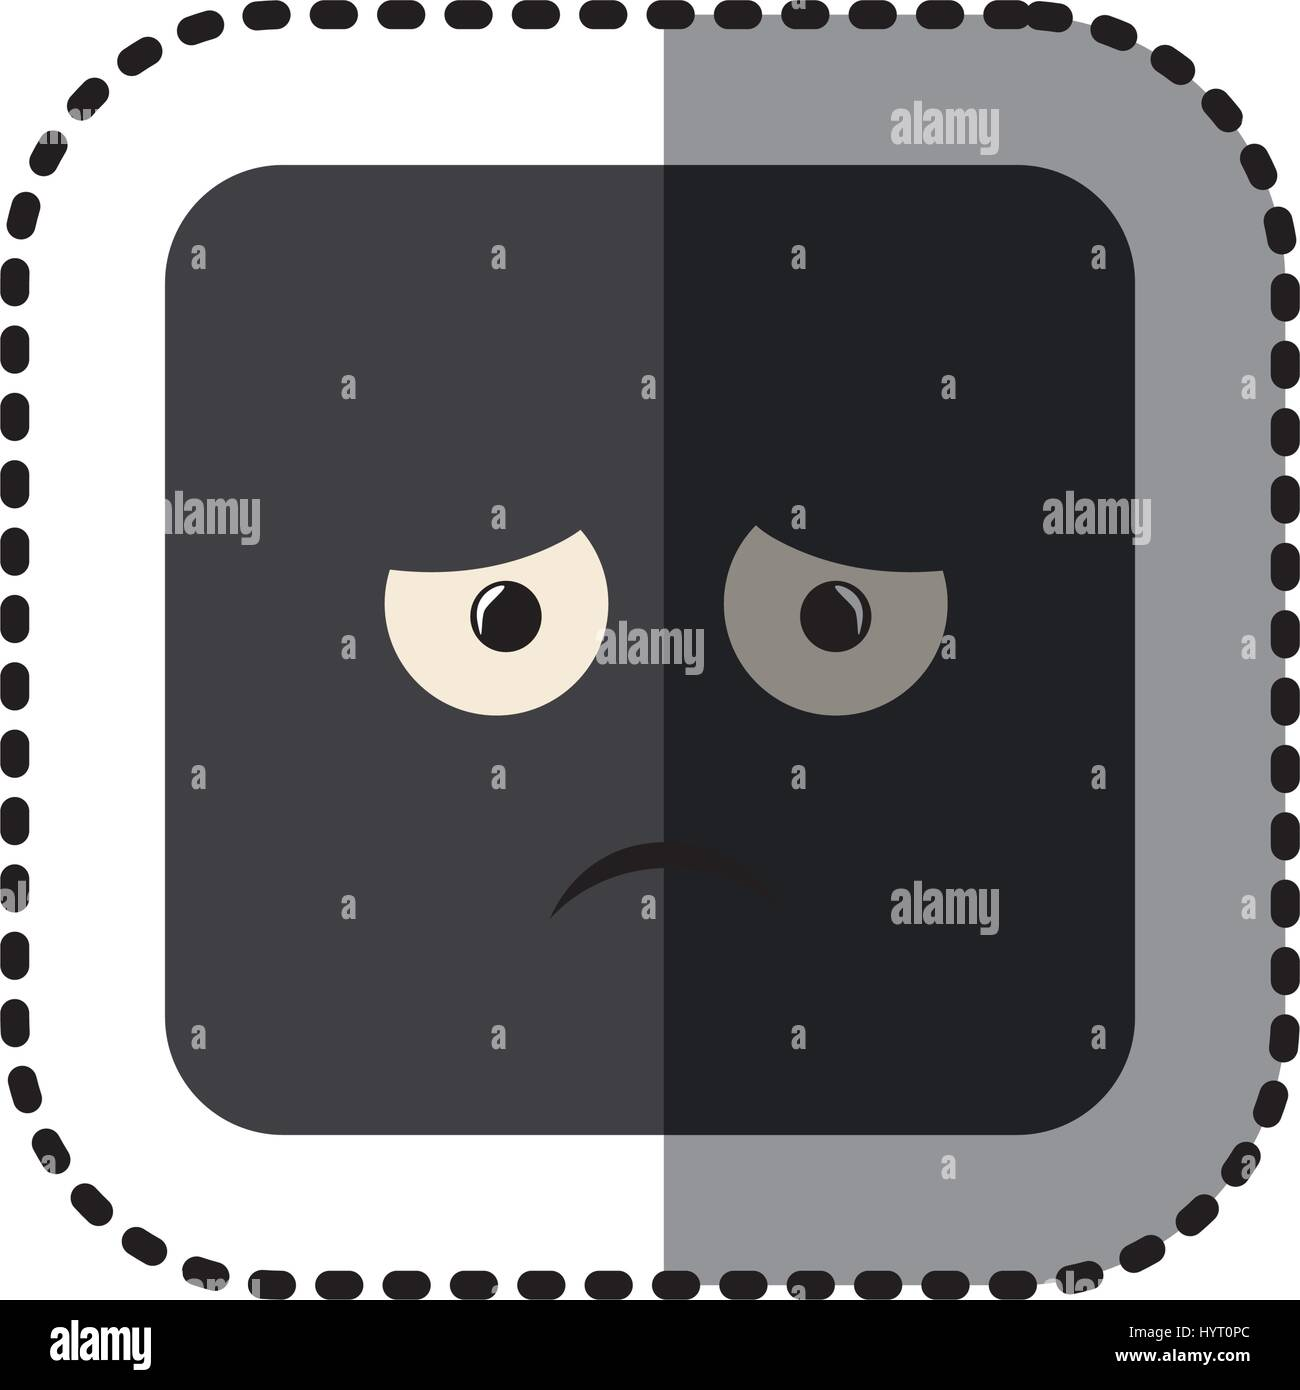 sticker square colorful shape emoticon dissapointed expression - Stock Vector